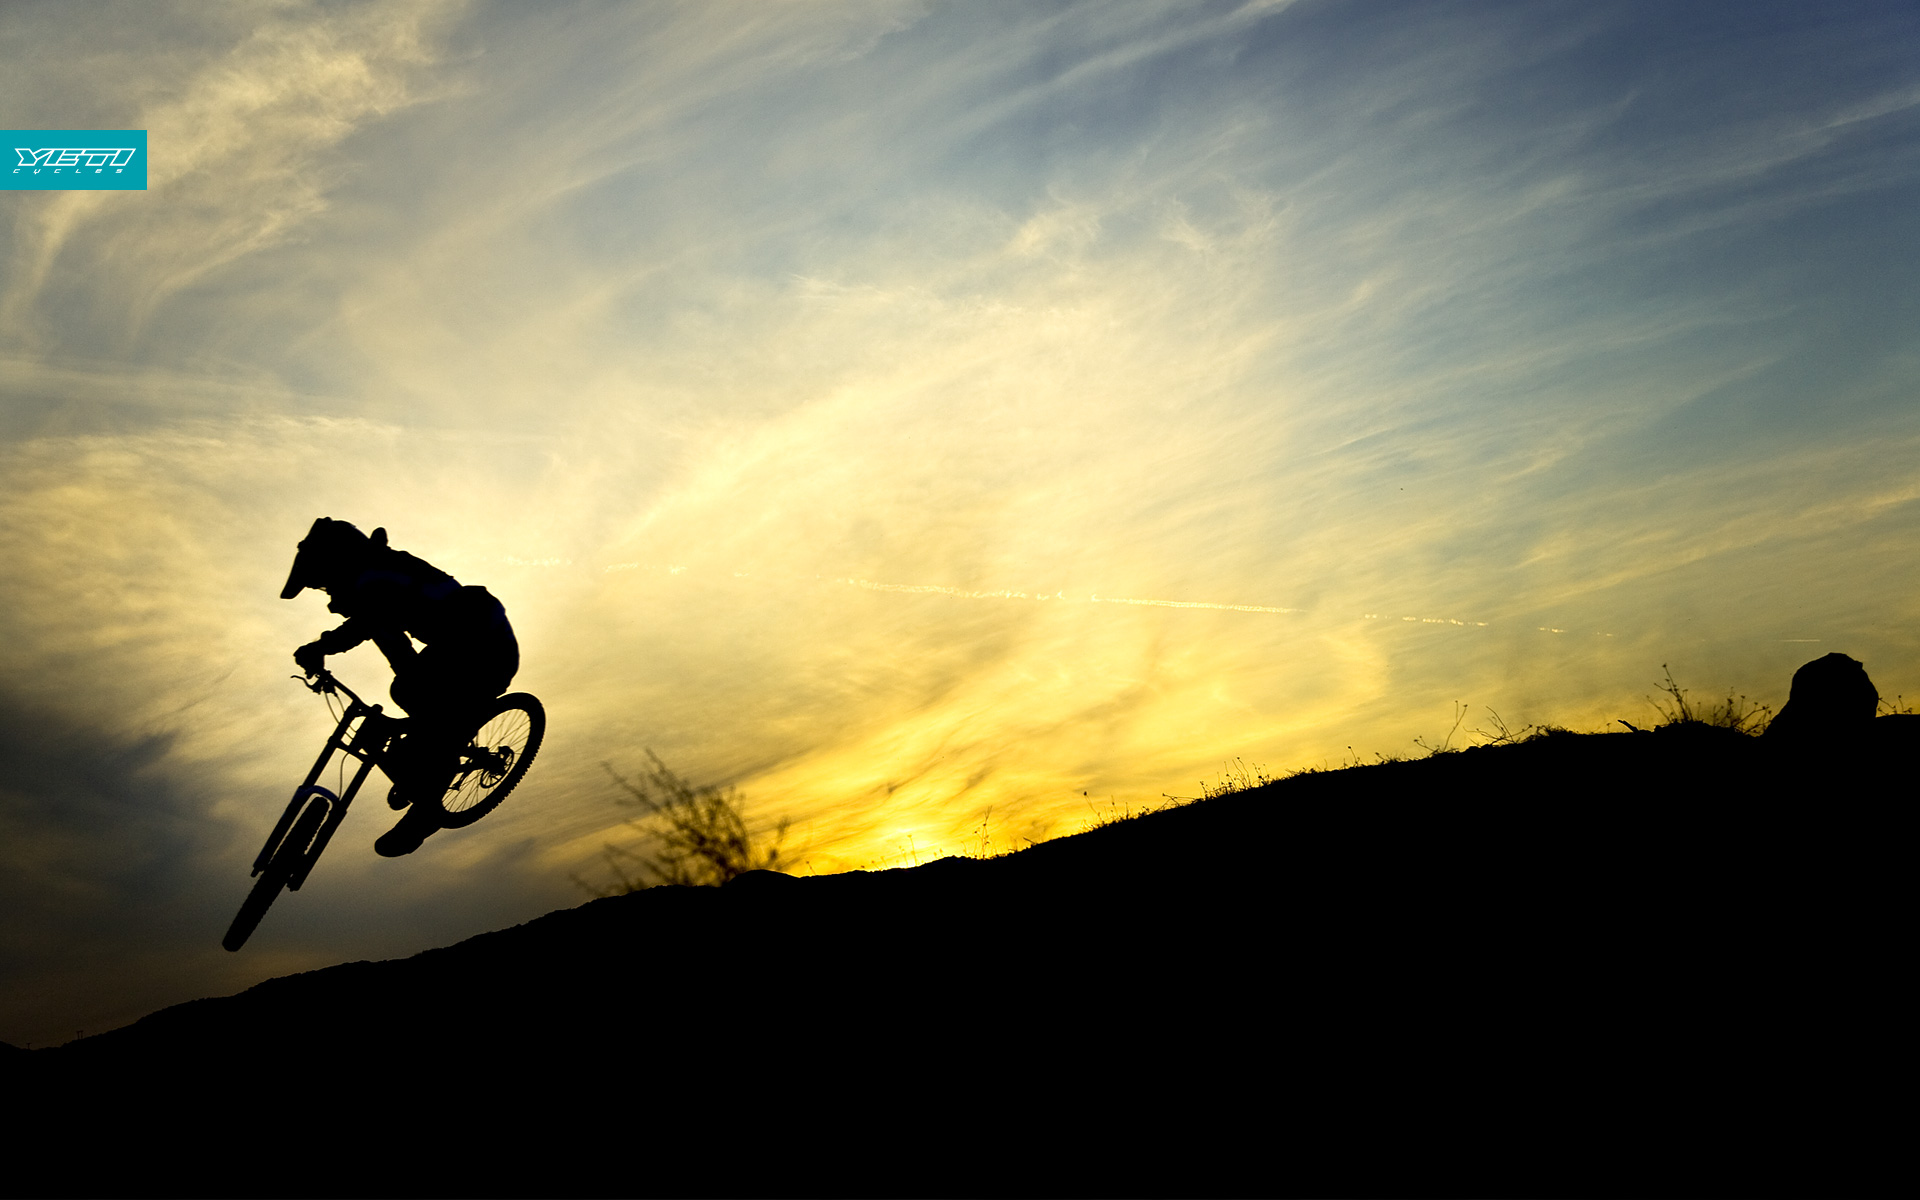 downhill sunset Bicycles silhouettes HD Wallpaper